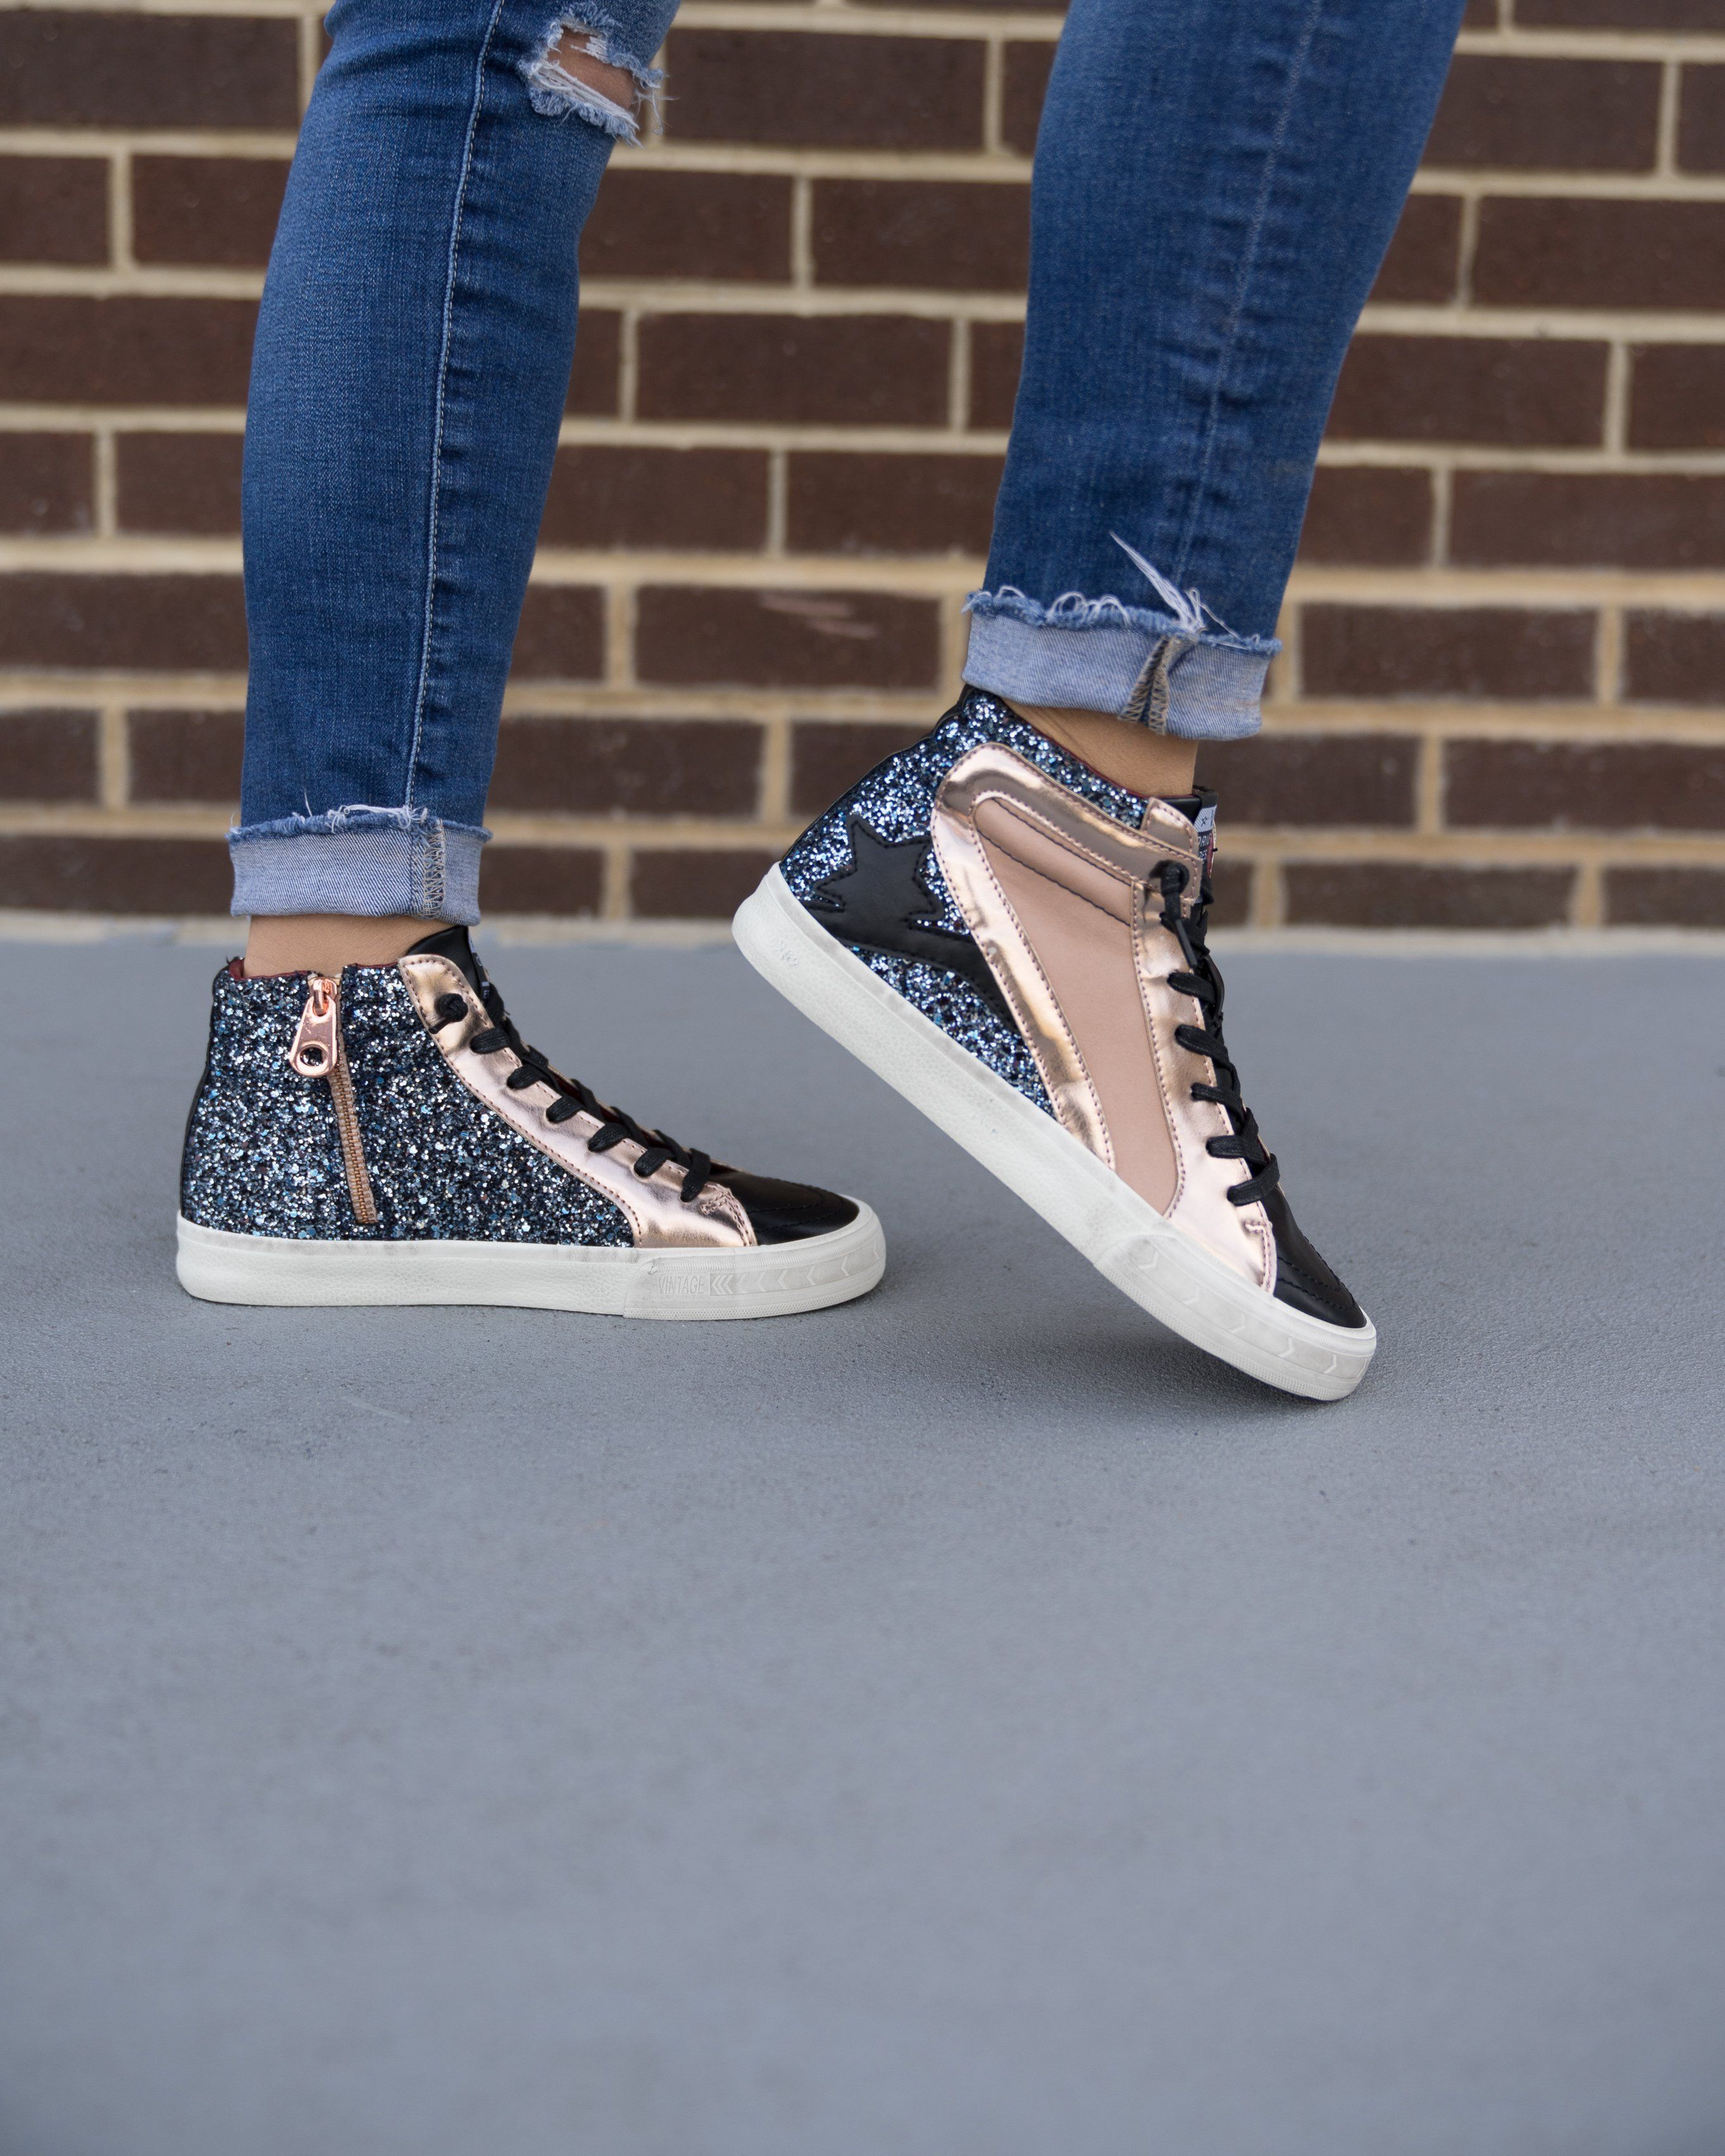 obsessing over these funky sneakers